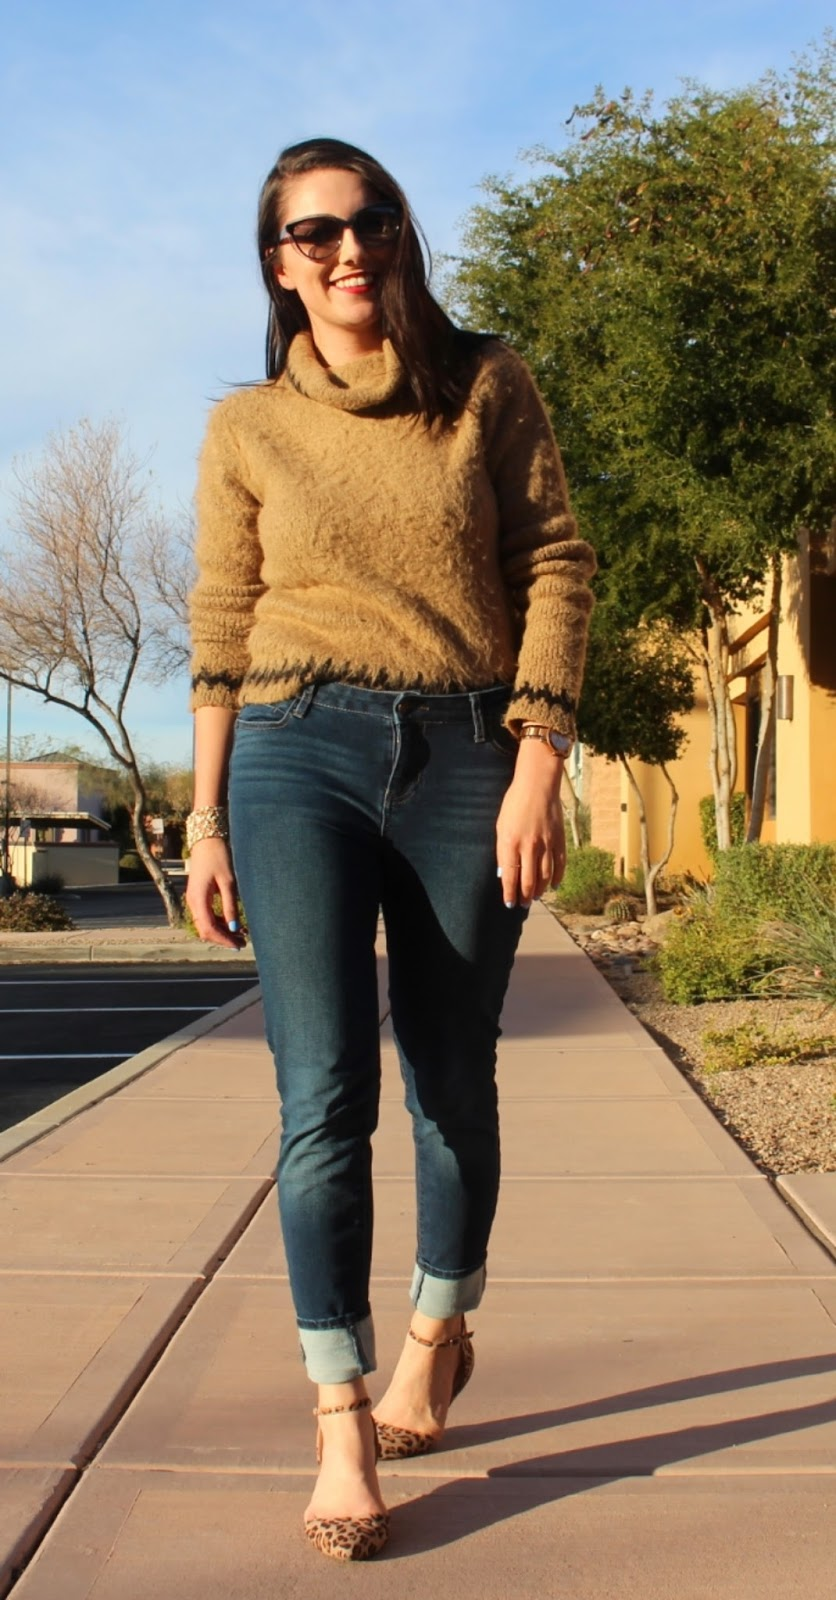 This is a full body shot of my outfit featuring a tan ASOS sweater, blue jeans and leopard flats.